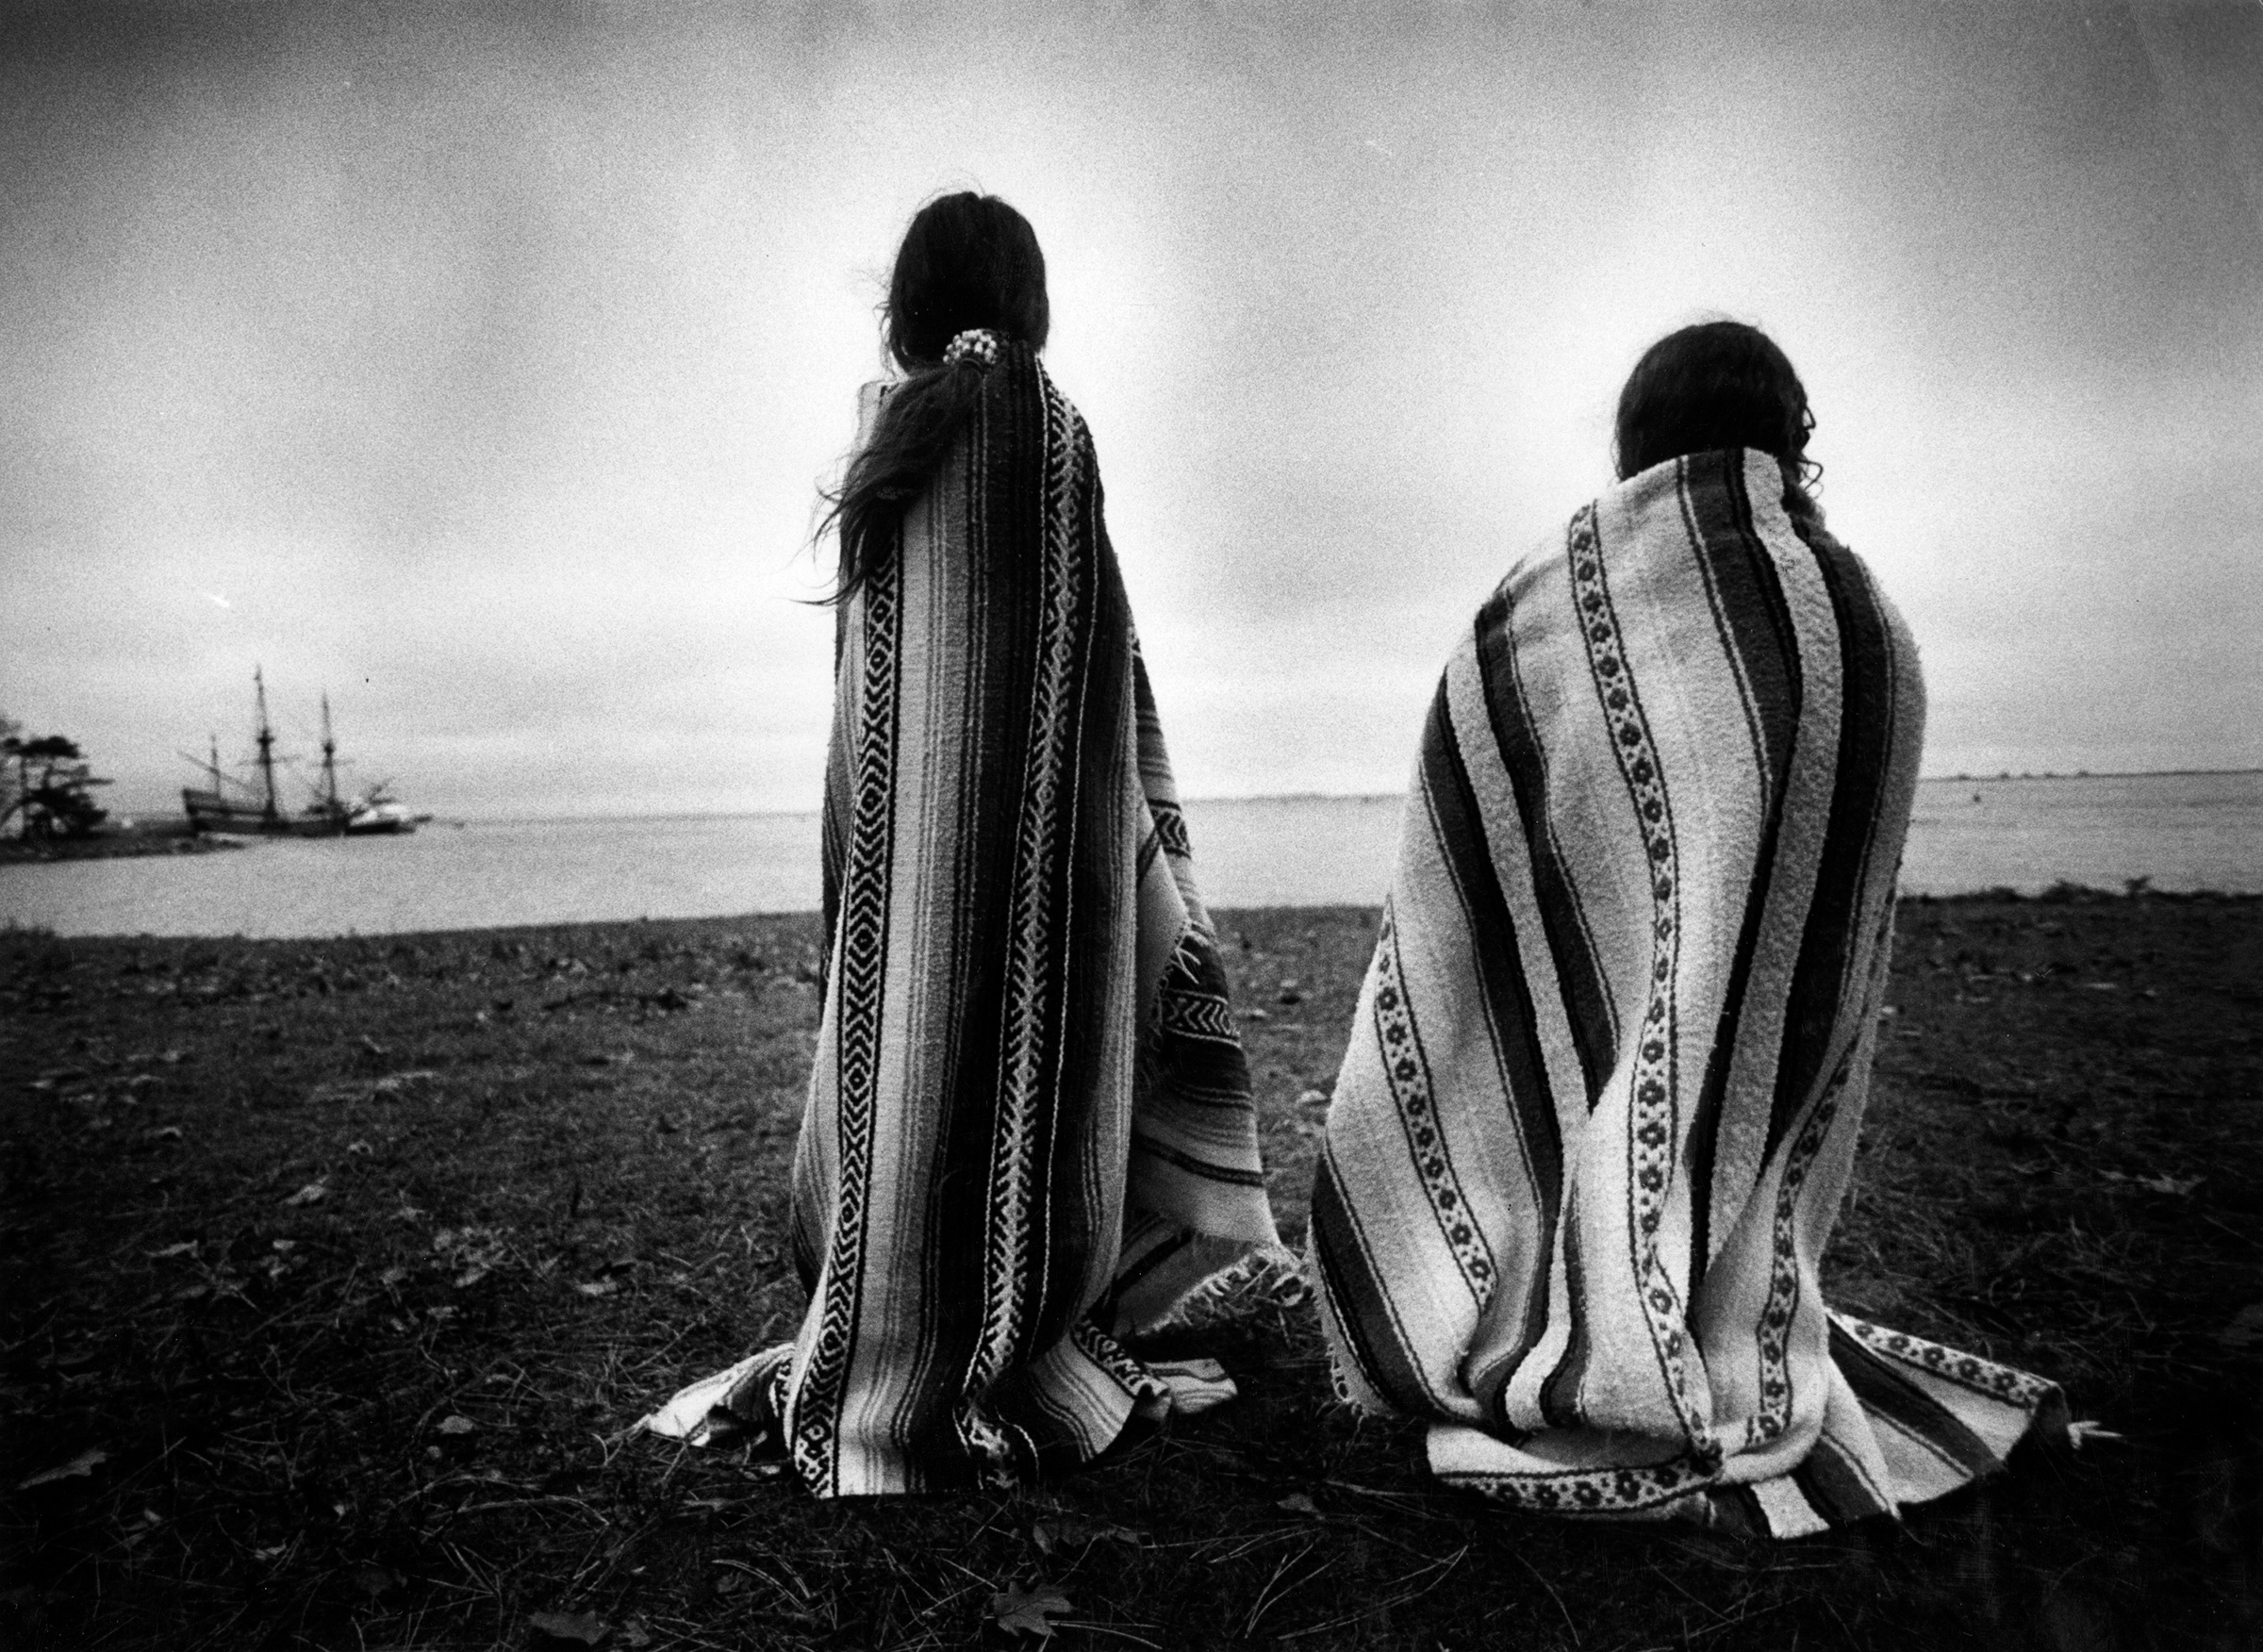 Weetoomoo Carey, 8, left, and Jackolynn Carey, 5, Wampanoag Nipmucs from Mashpee, look across to the Mayflower replica anchored near Plymouth Rock on Nov. 26, 1991. They were with a group of Native Americans gathered for a day of mourning in response to the Pilgrims' Thanksgiving